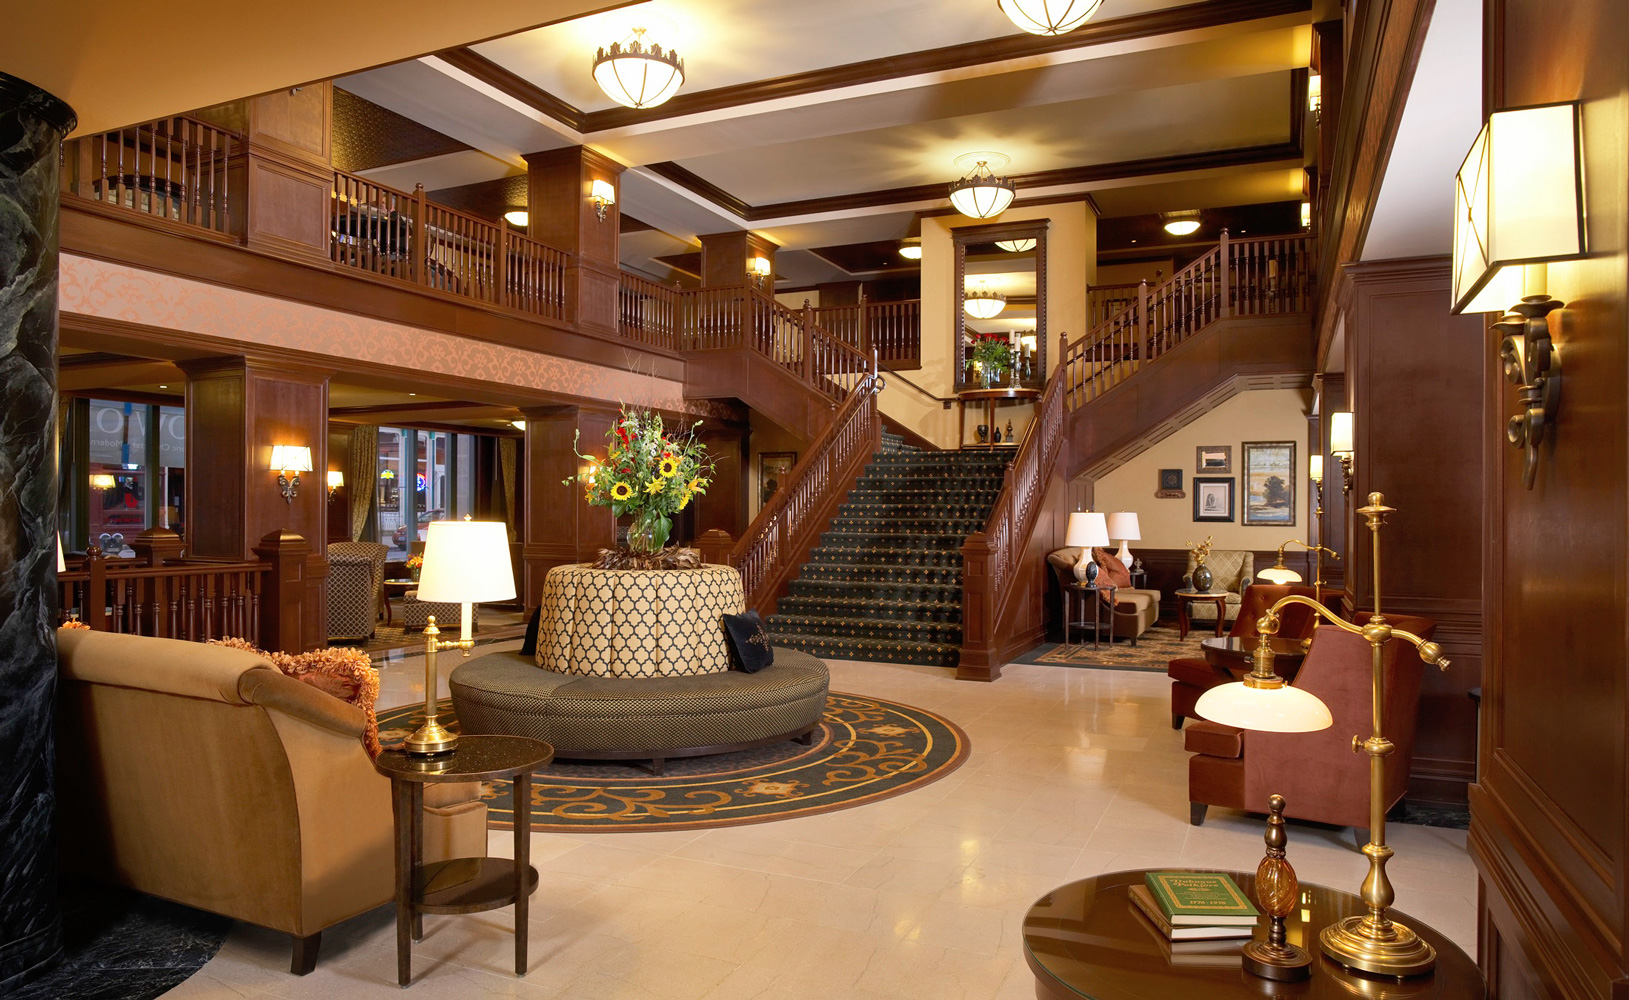 Hotel Julien Dubuque lobby. Photo courtesy of Hotel Julien Dubuque.